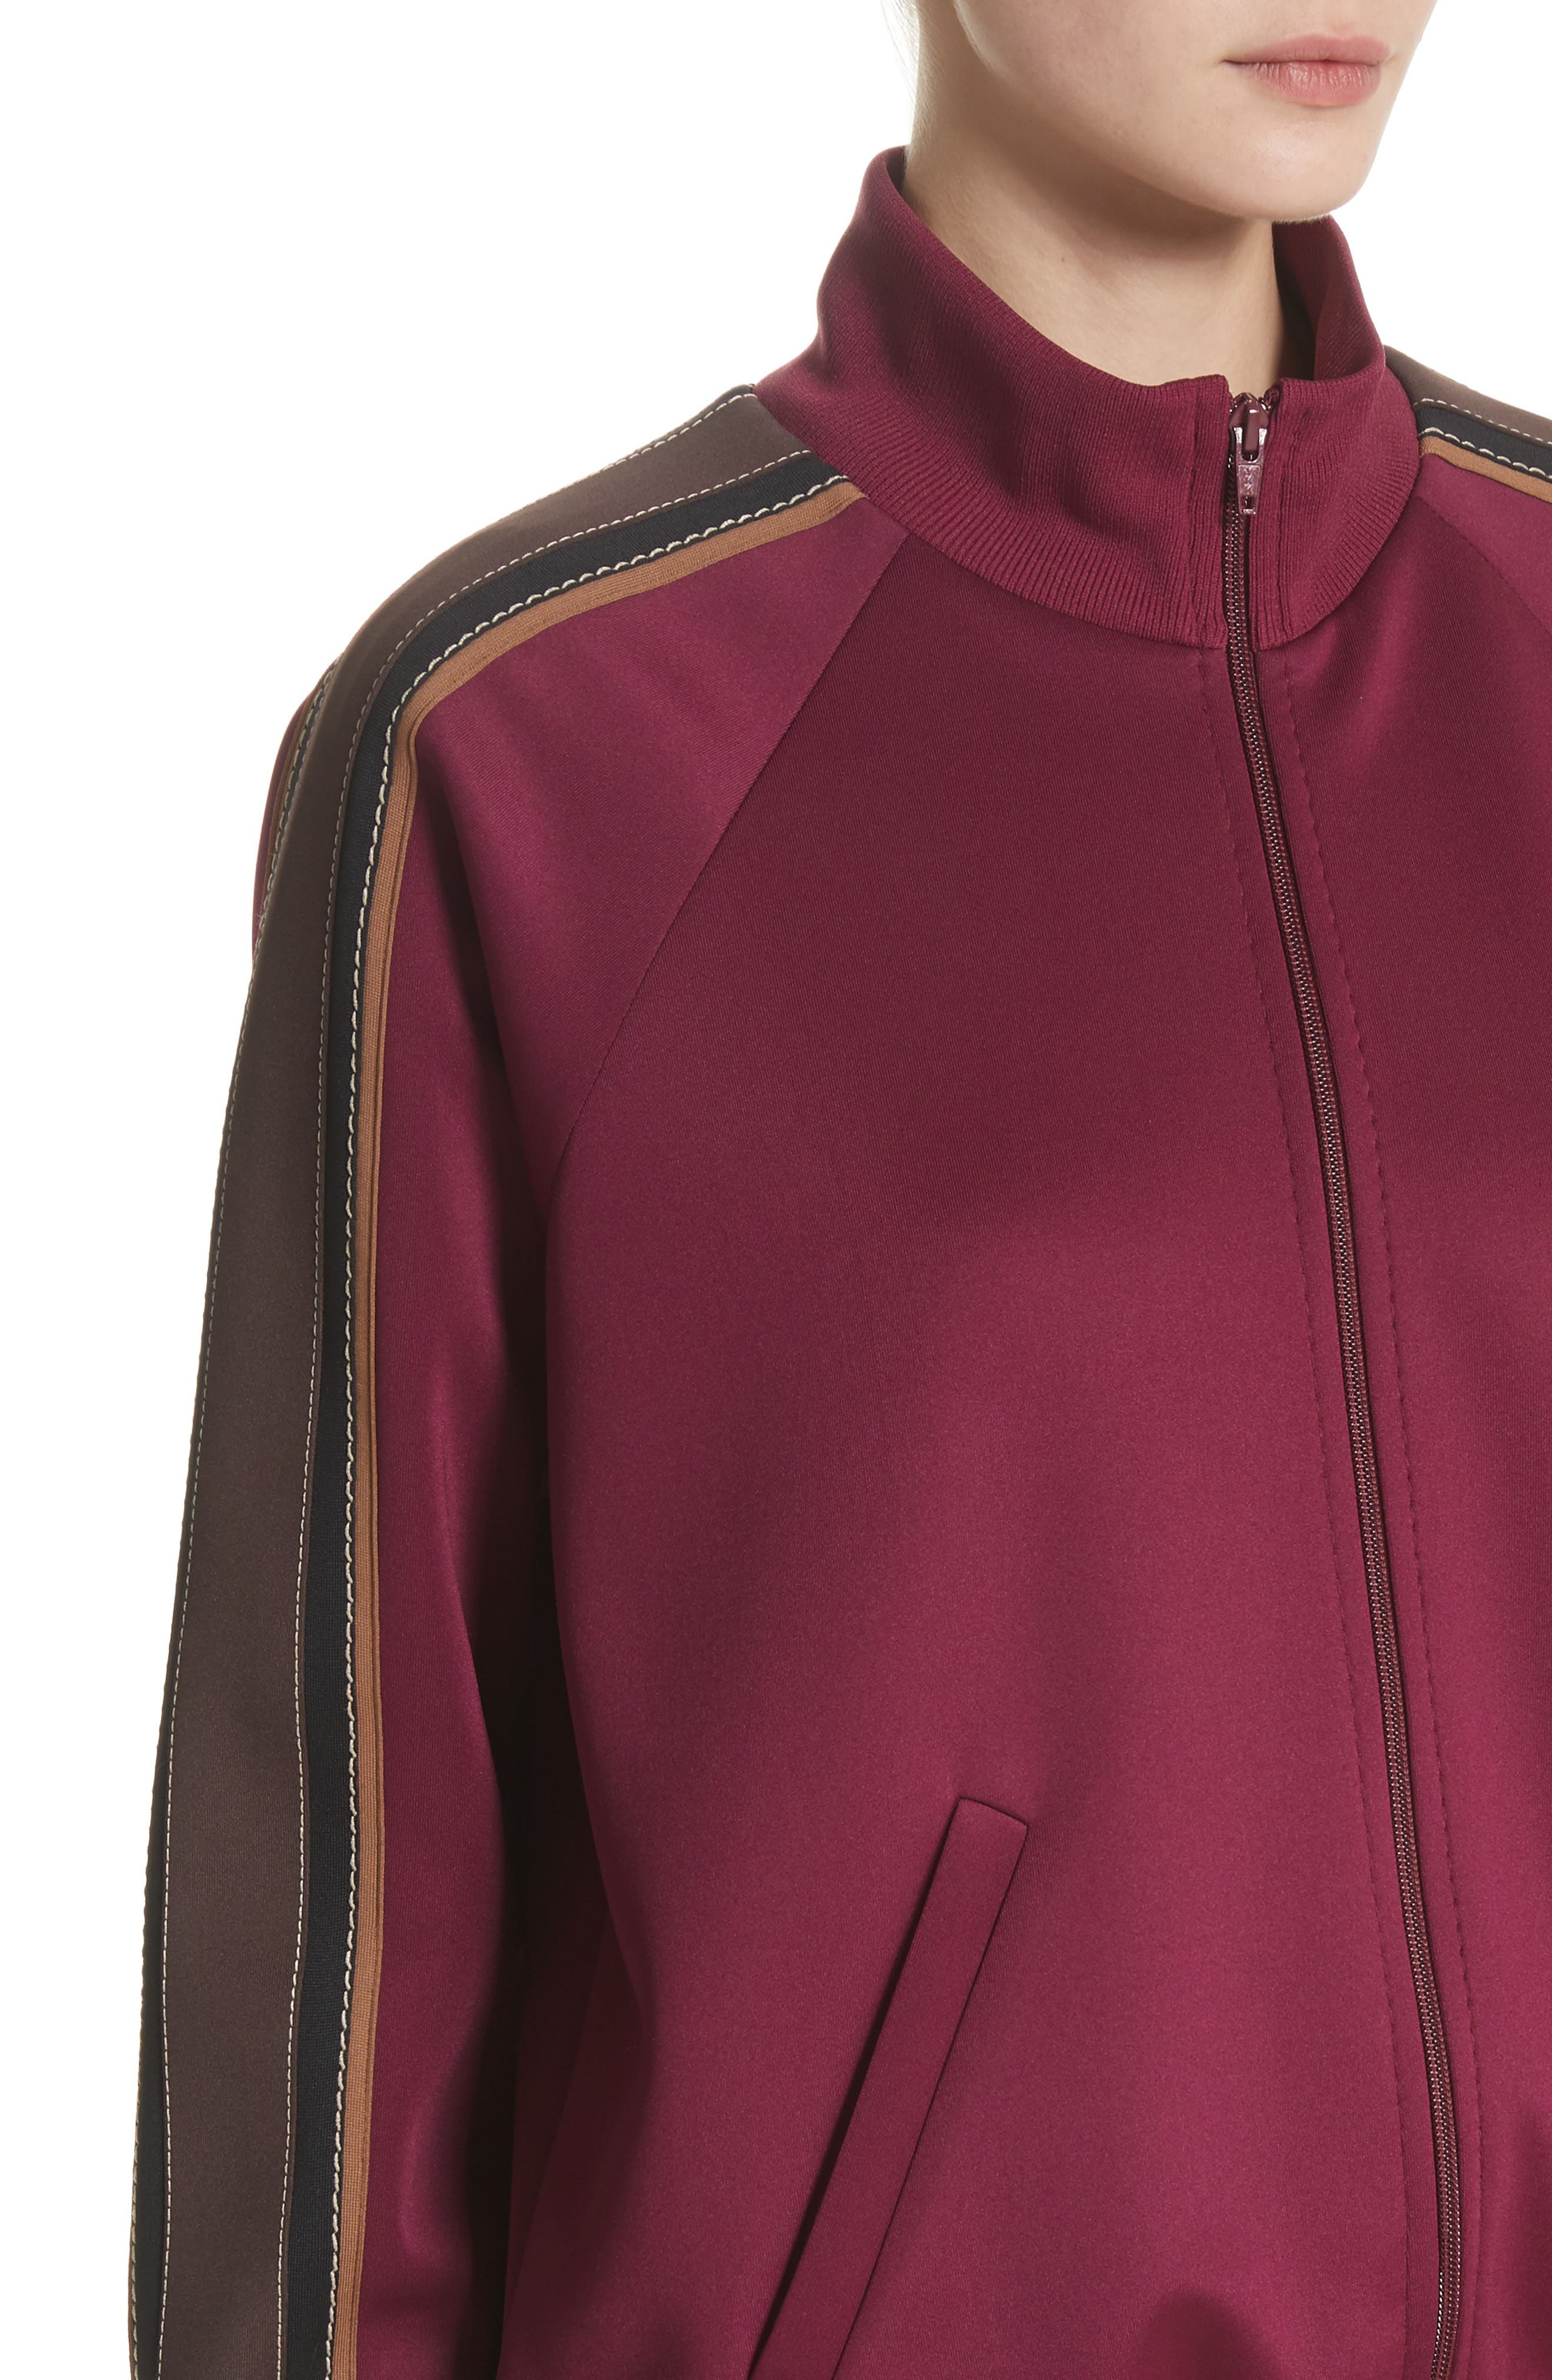 Zip Jersey Track Jacket,                             Alternate thumbnail 3, color,                             Burgundy Multi